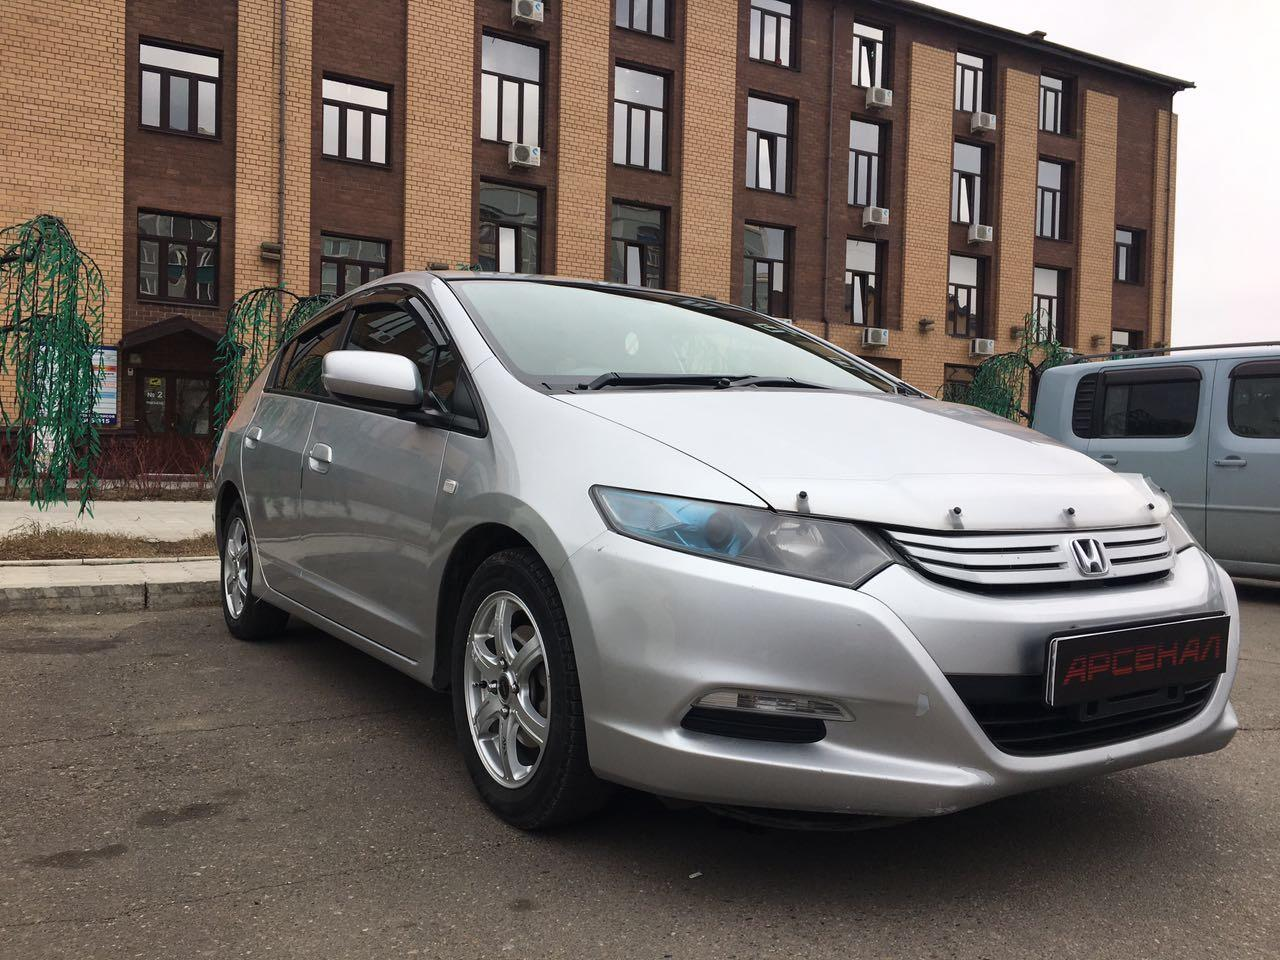 Седан Honda Insight - фото 6